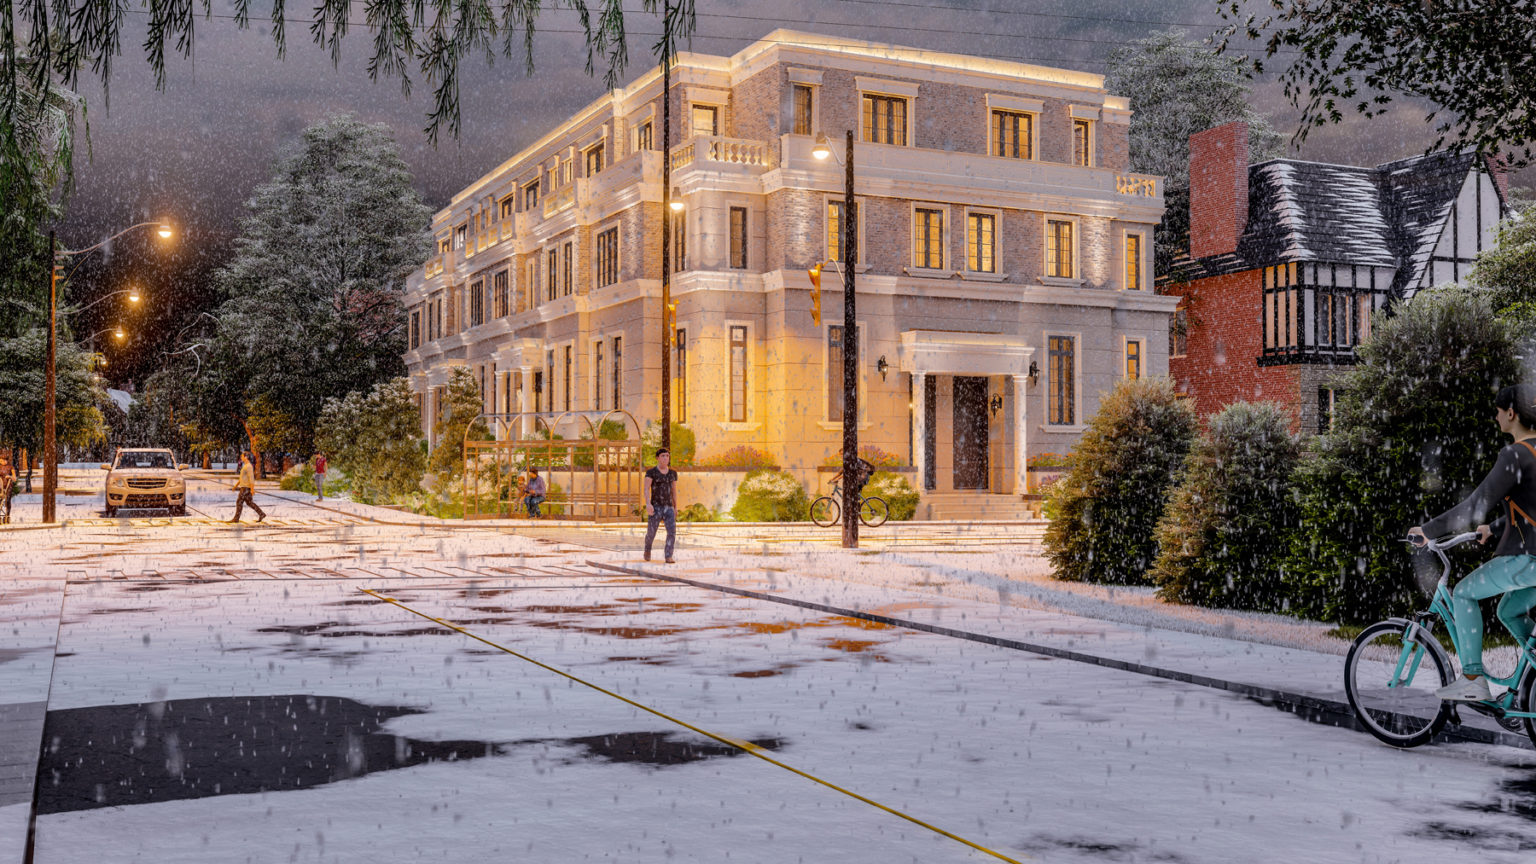 Rendering of Hillhurst Towns exterior in the winter.